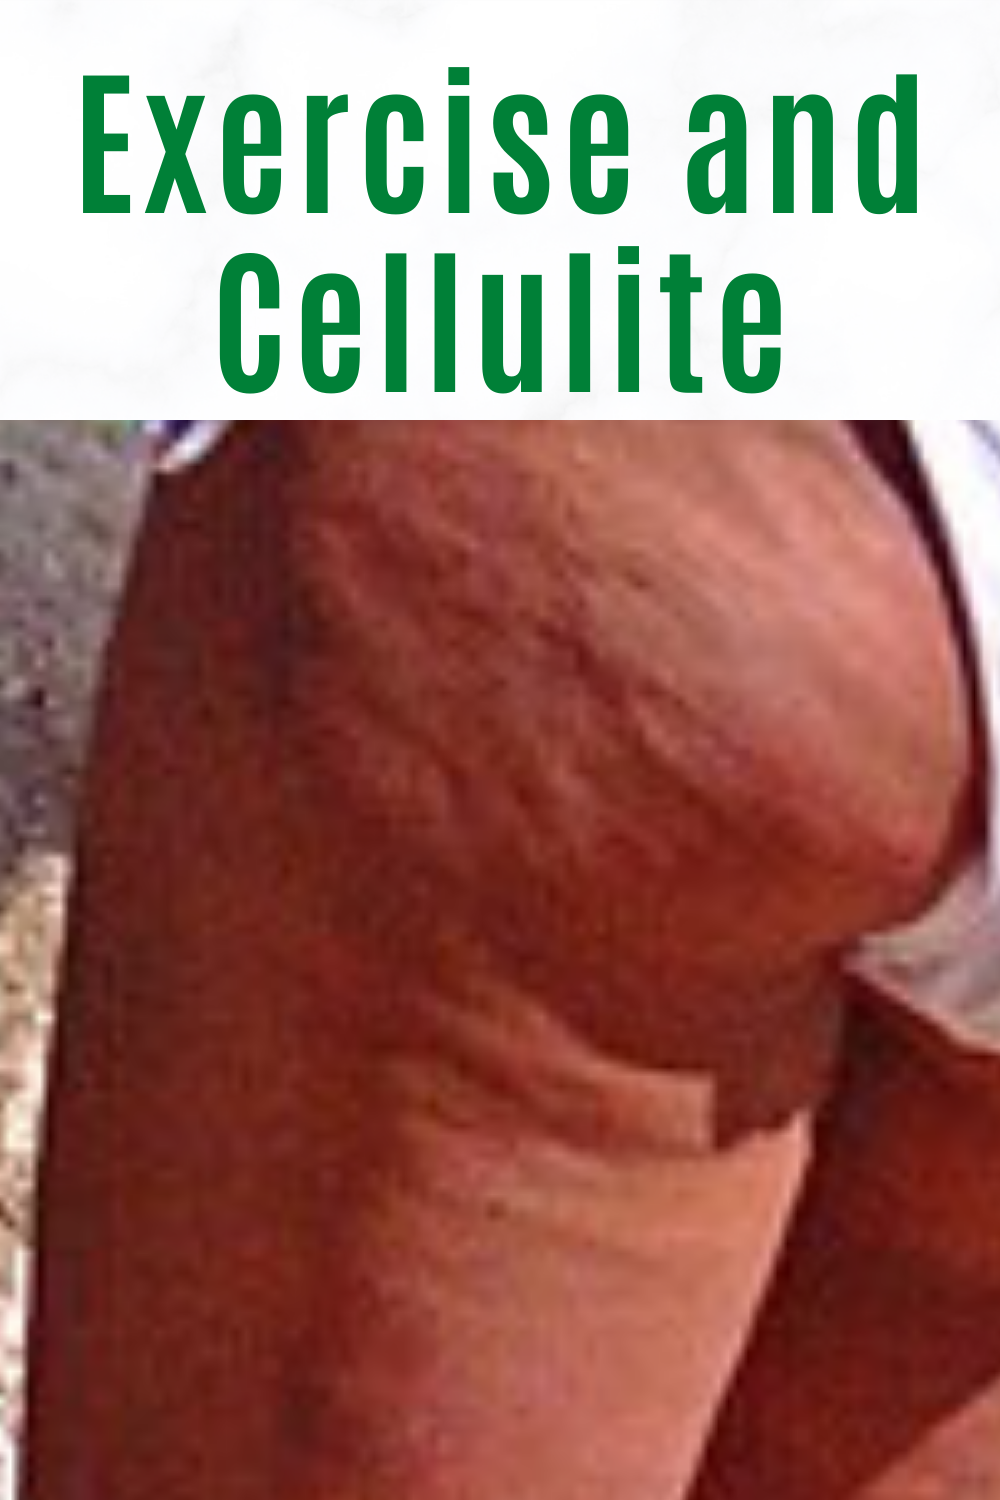 Exercise and Cellulite